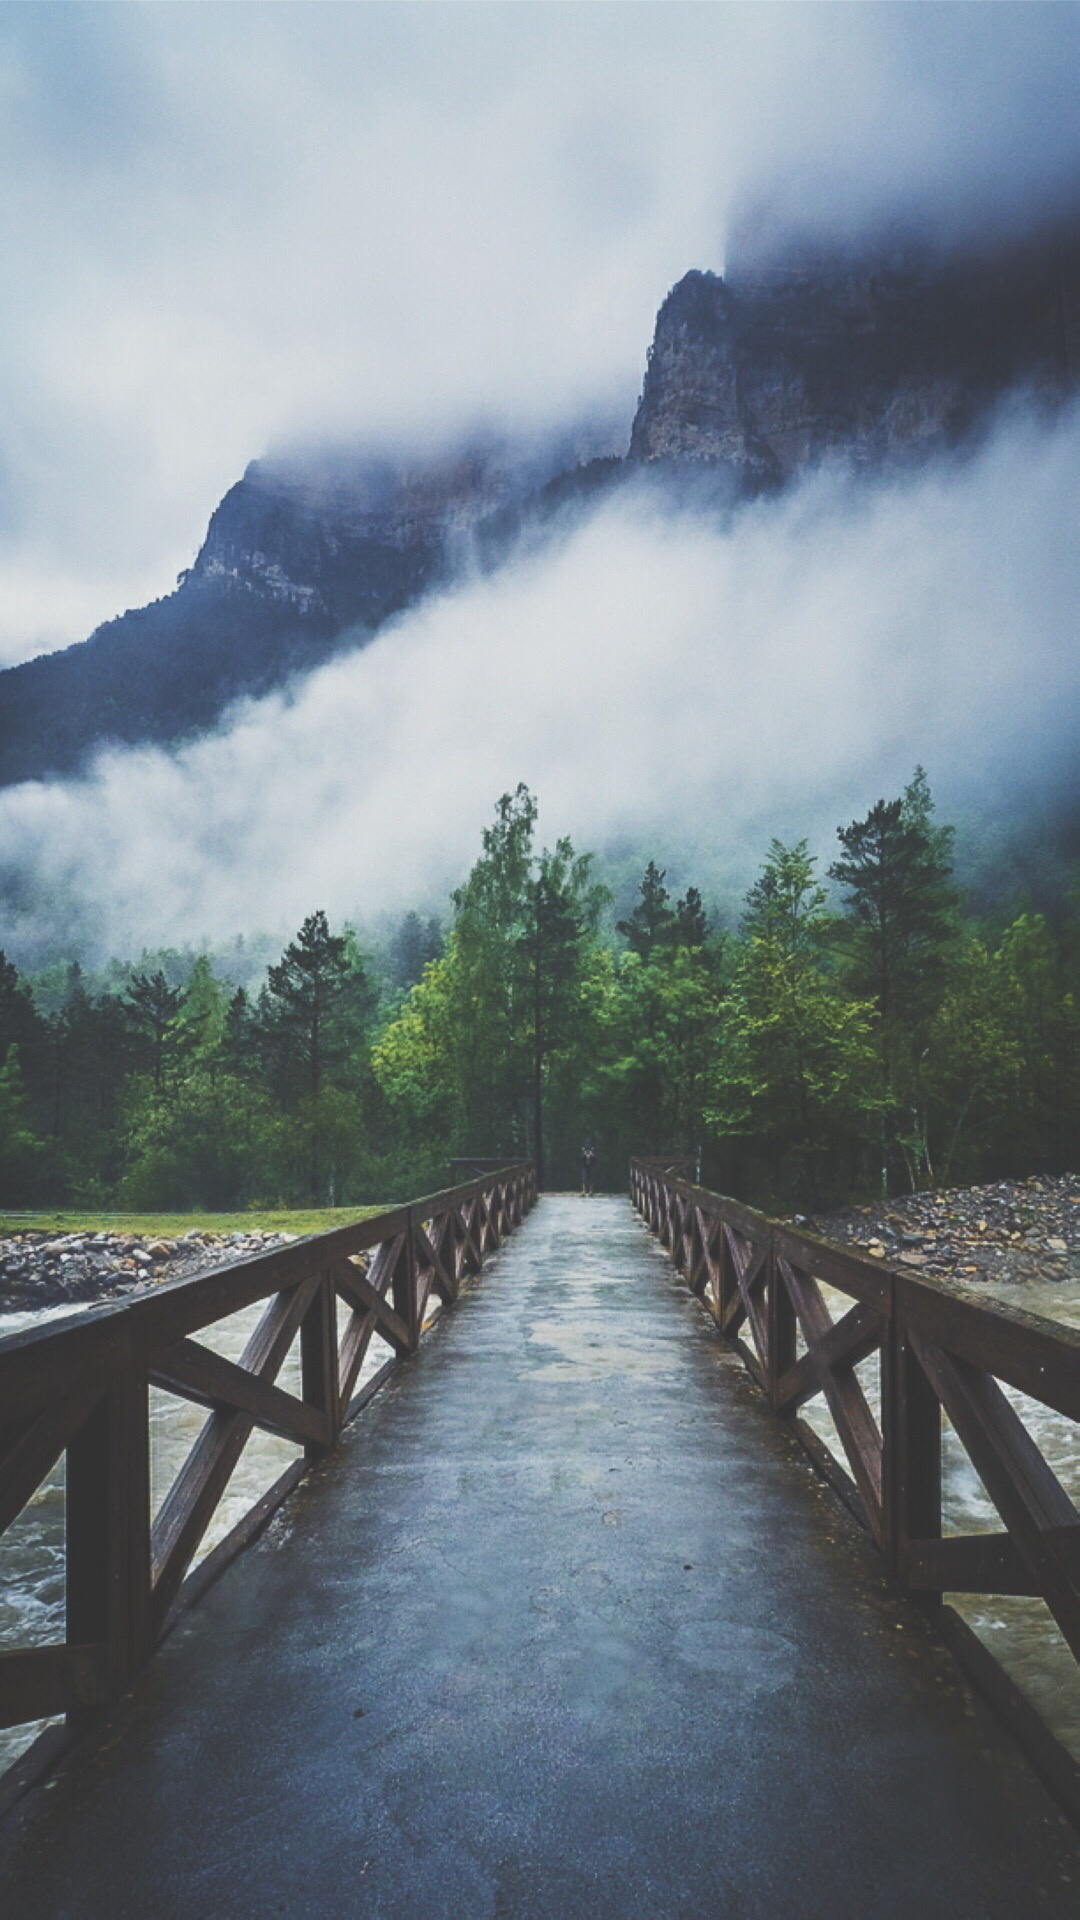 river-crossing-forest-bridge-mist-android-wallpaper